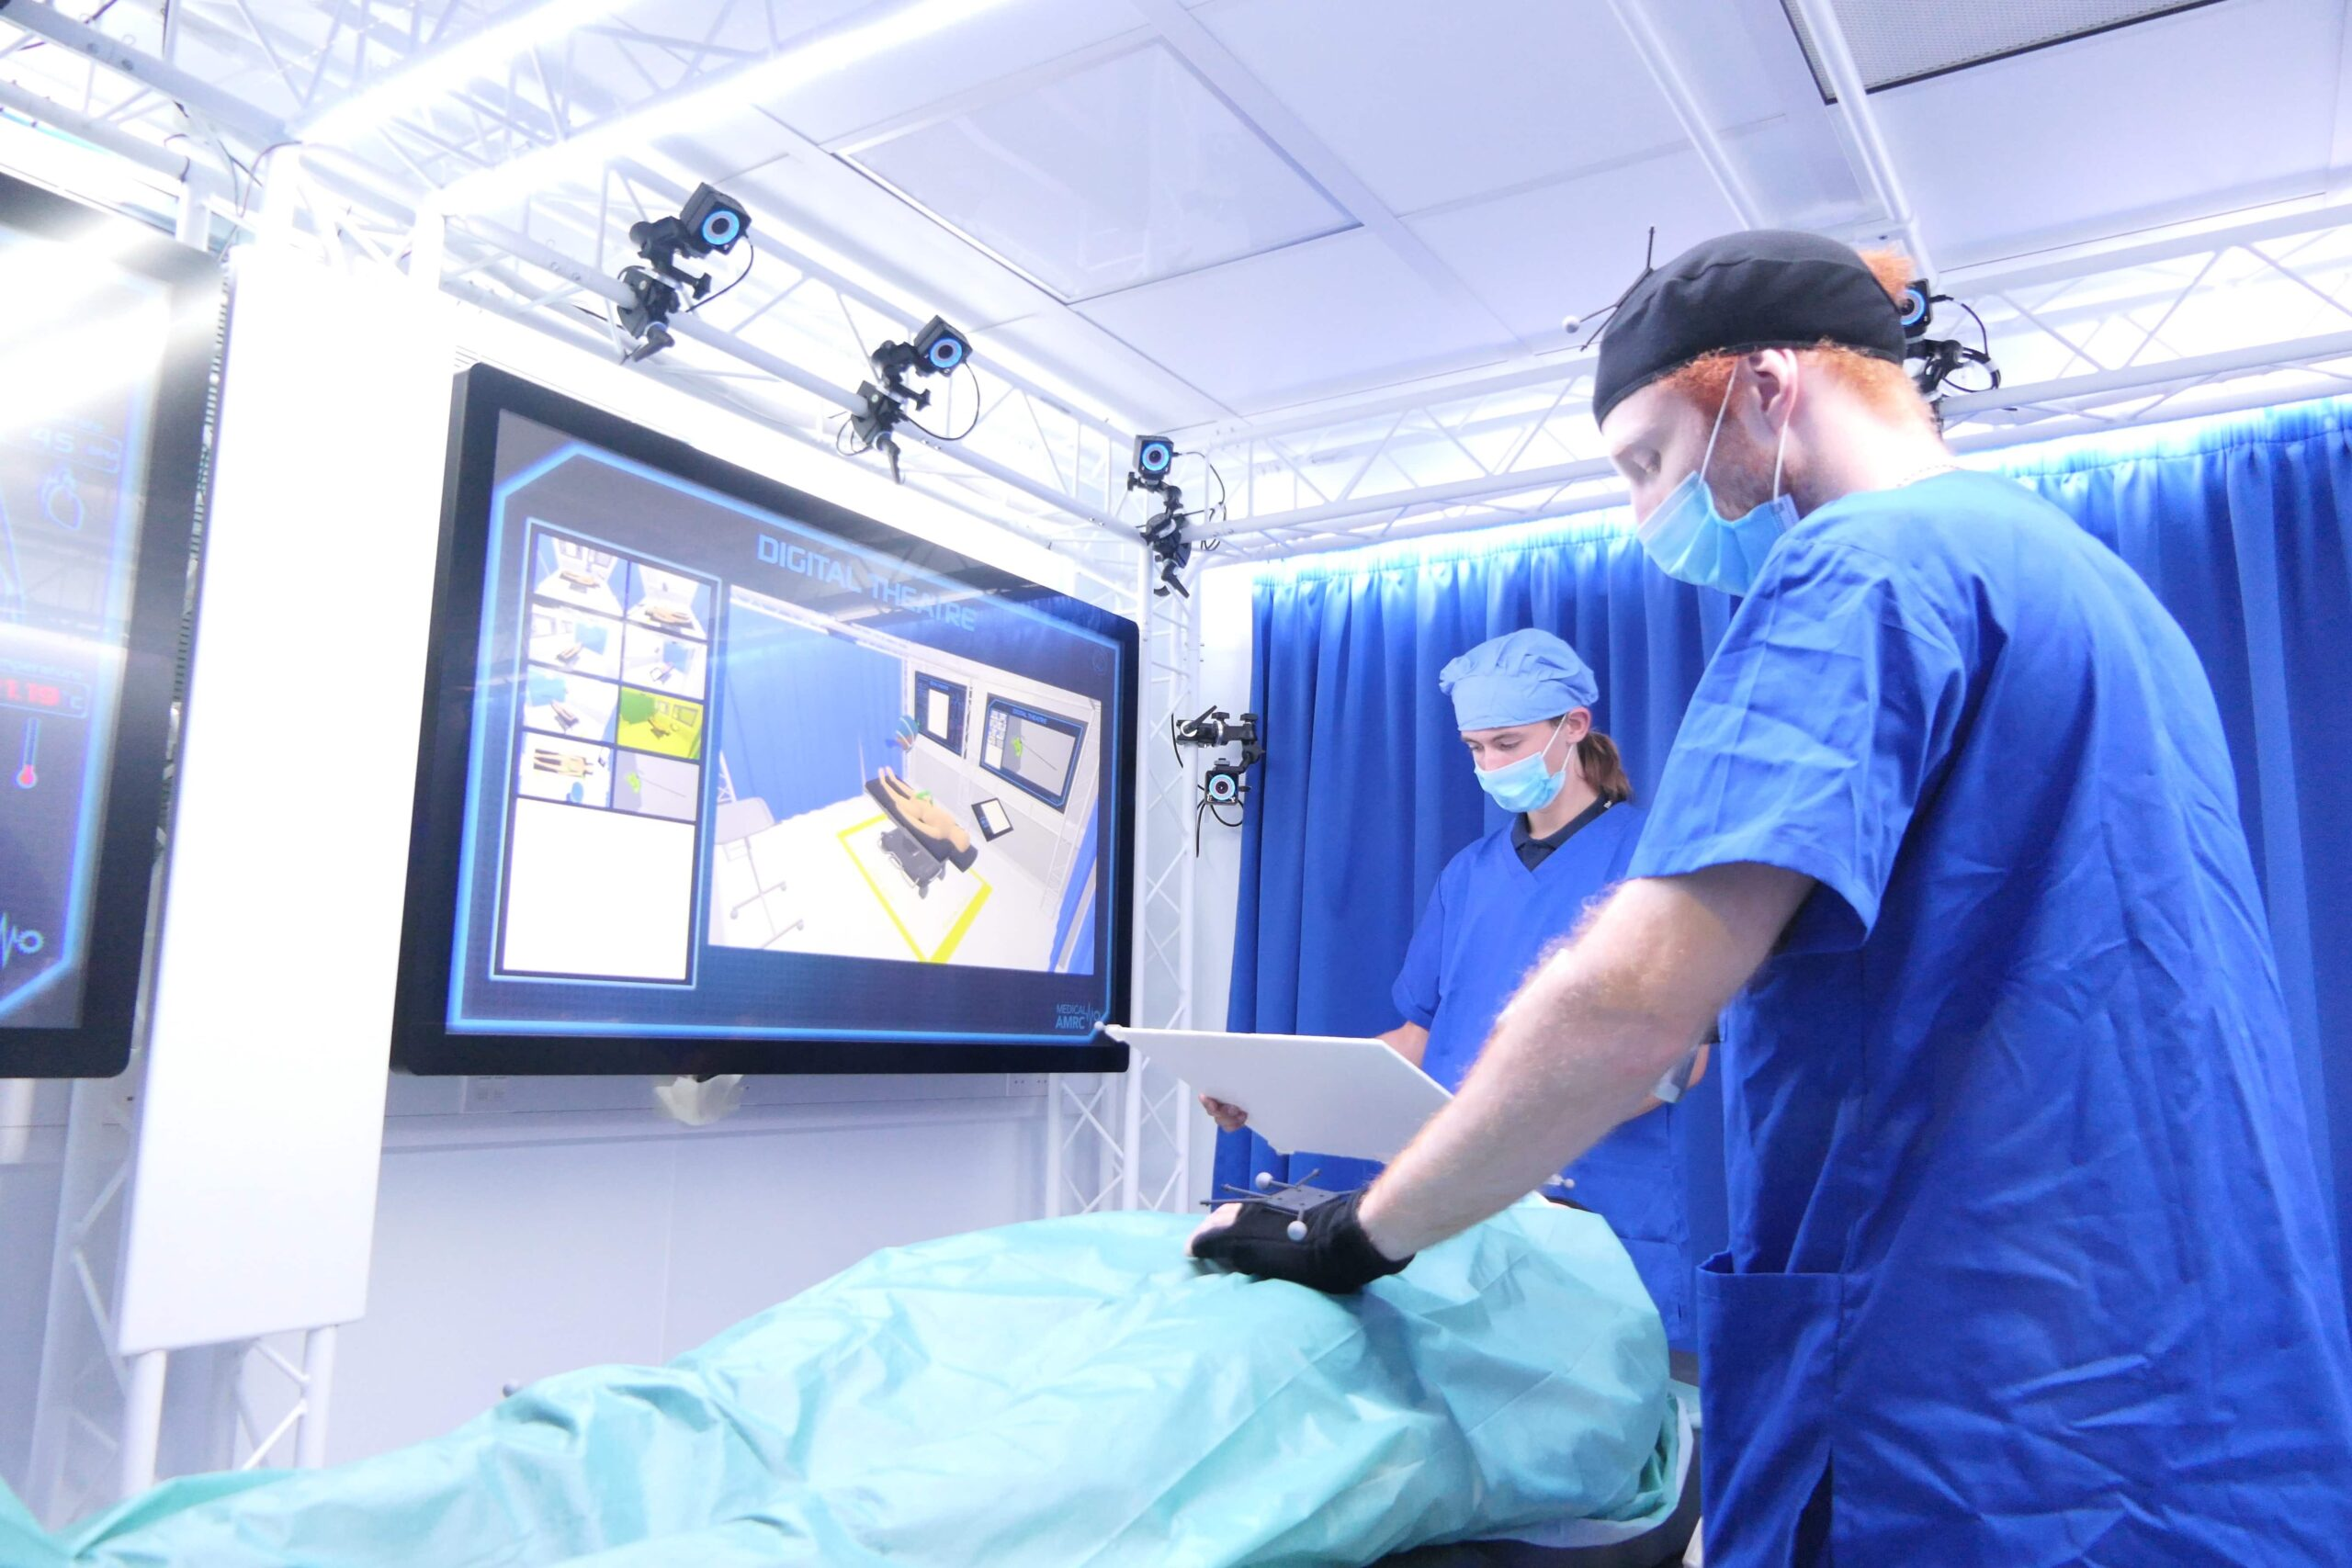 The Digital Operating Theatre proof of concept demonstrator at the AMRC in Rotherham.